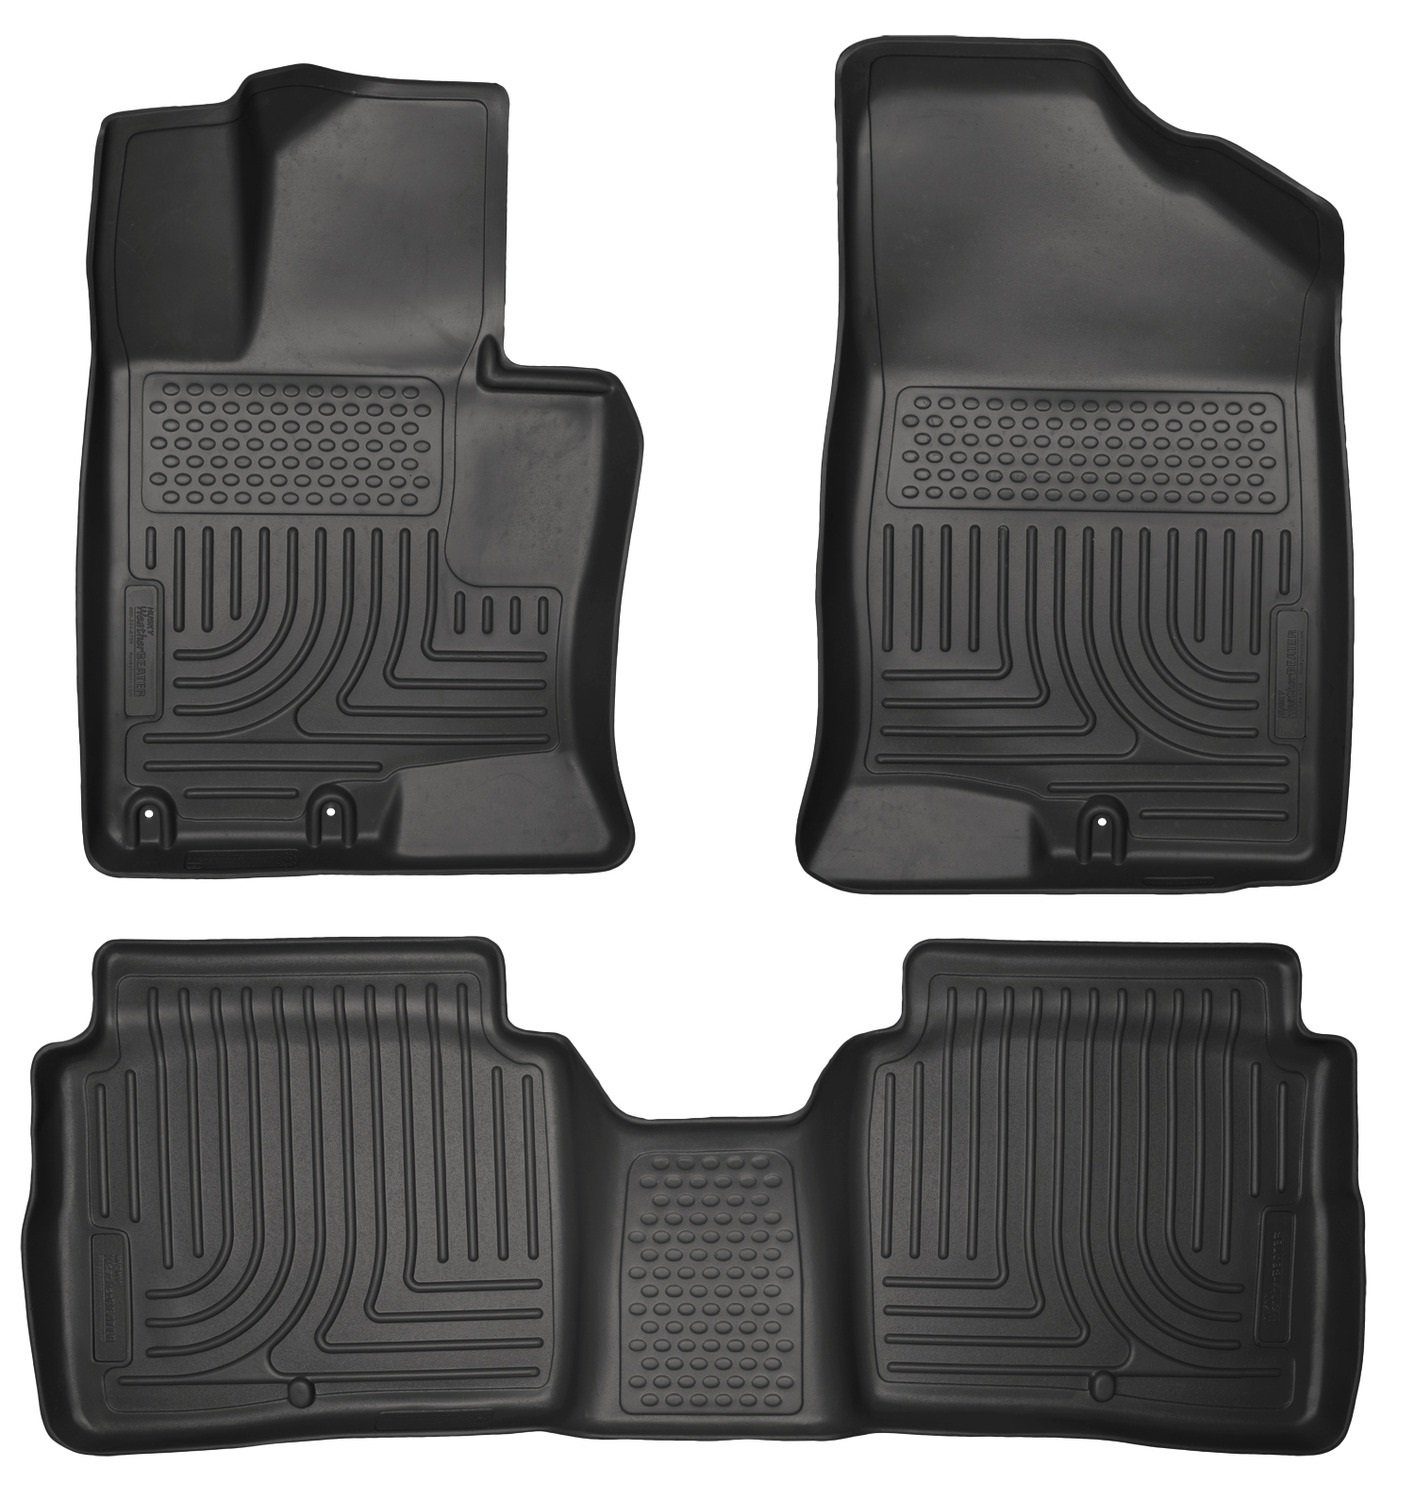 Floor mats kia - Amazon Com Husky Liners Front 2nd Seat Floor Liners Footwell Coverage Fits 11 15 Optima Automotive